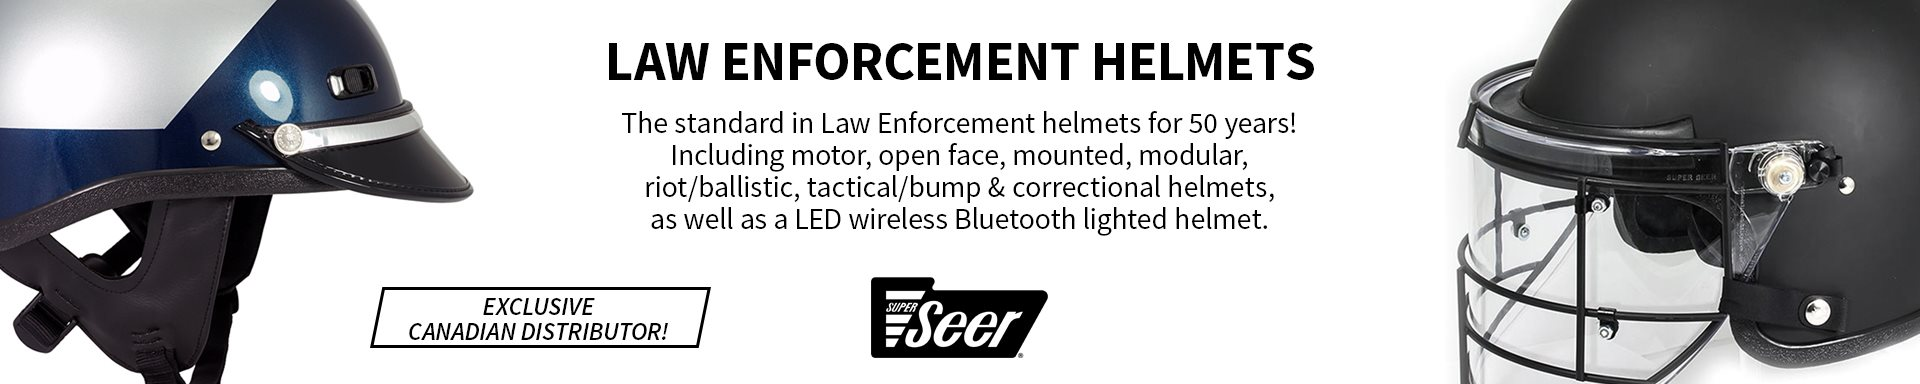 Super Seer - Law Enforcement Helmets